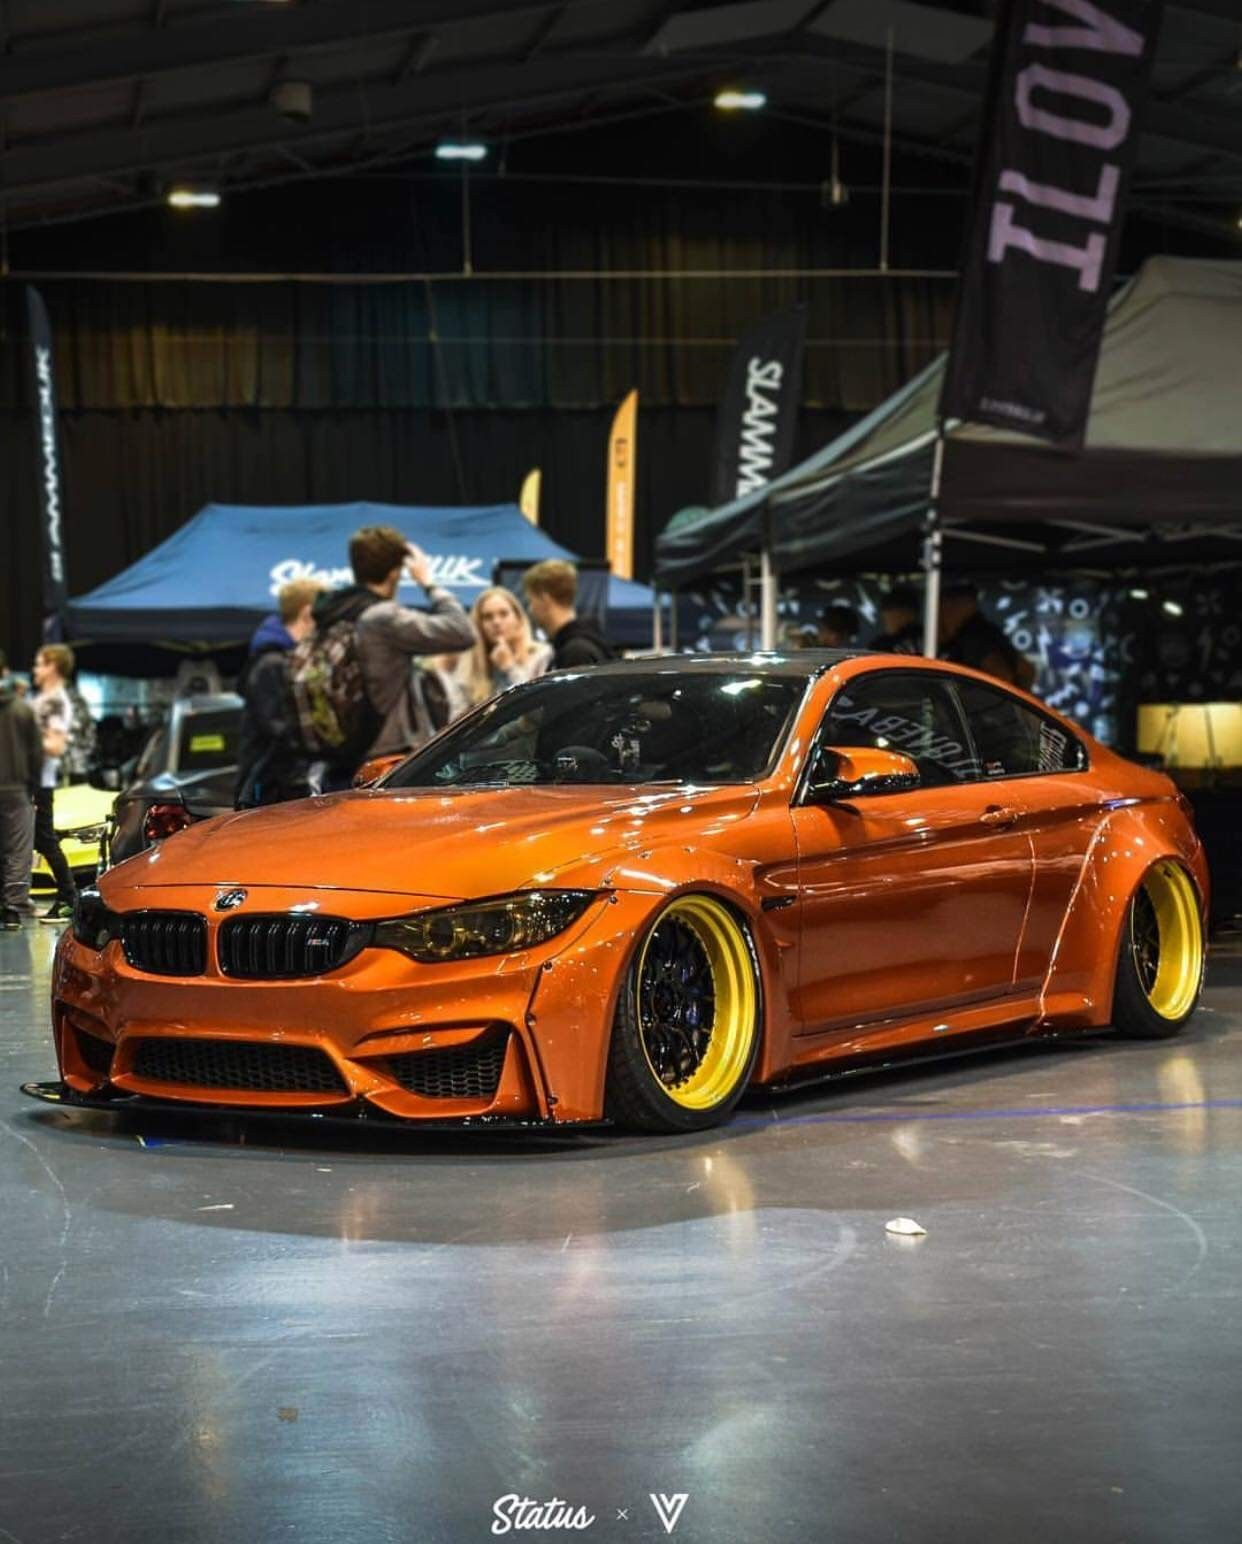 Is A Bmw A Foreign Car >> Bmw M4 Foreign Bmw M4 Cars Tuner Cars